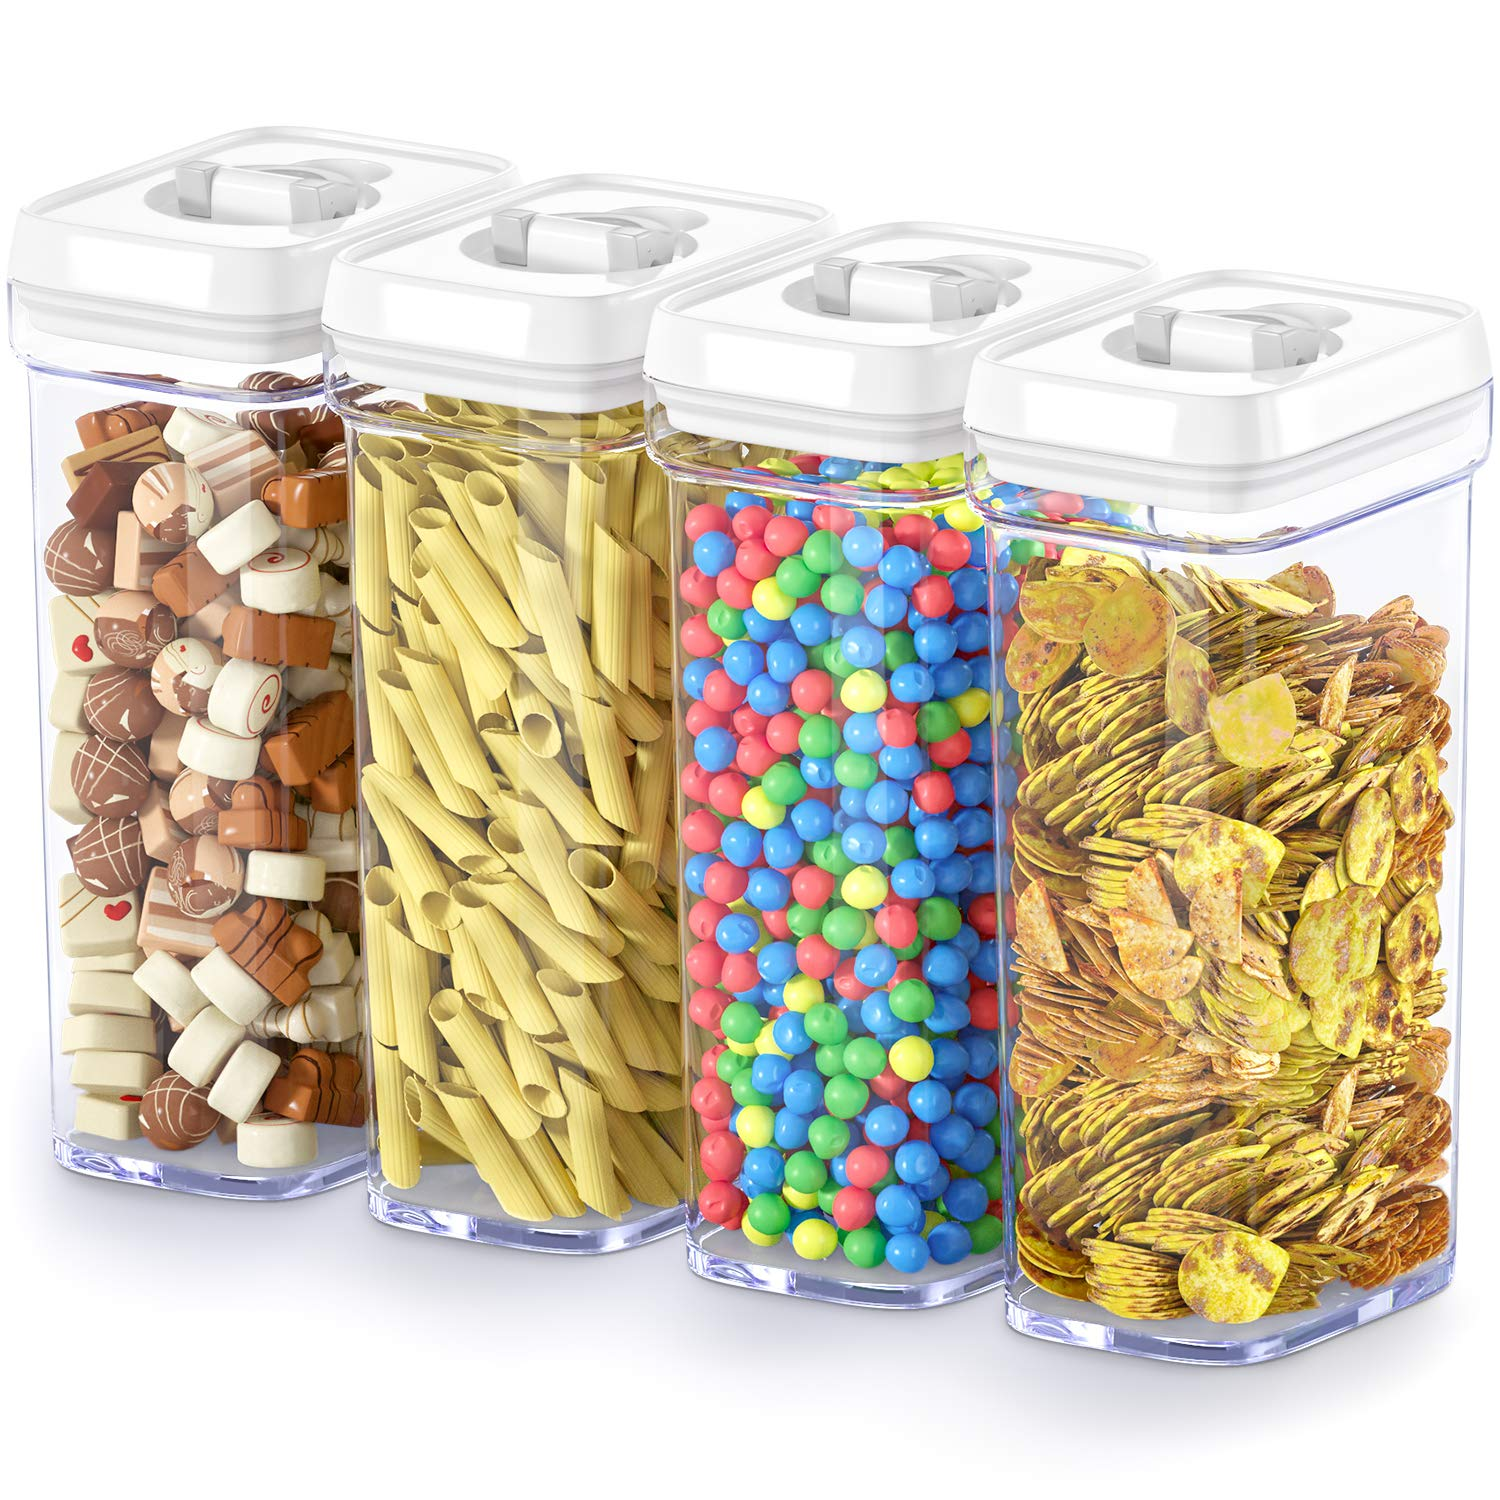 DWËLLZA KITCHEN Airtight Food Storage Containers with Lids – 4 Piece Set/All Same Size - Large Air Tight Clear Plastic Pantry & Kitchen Container for Chips & Snacks BPA-Free - Keeps Food Fresh & Dry